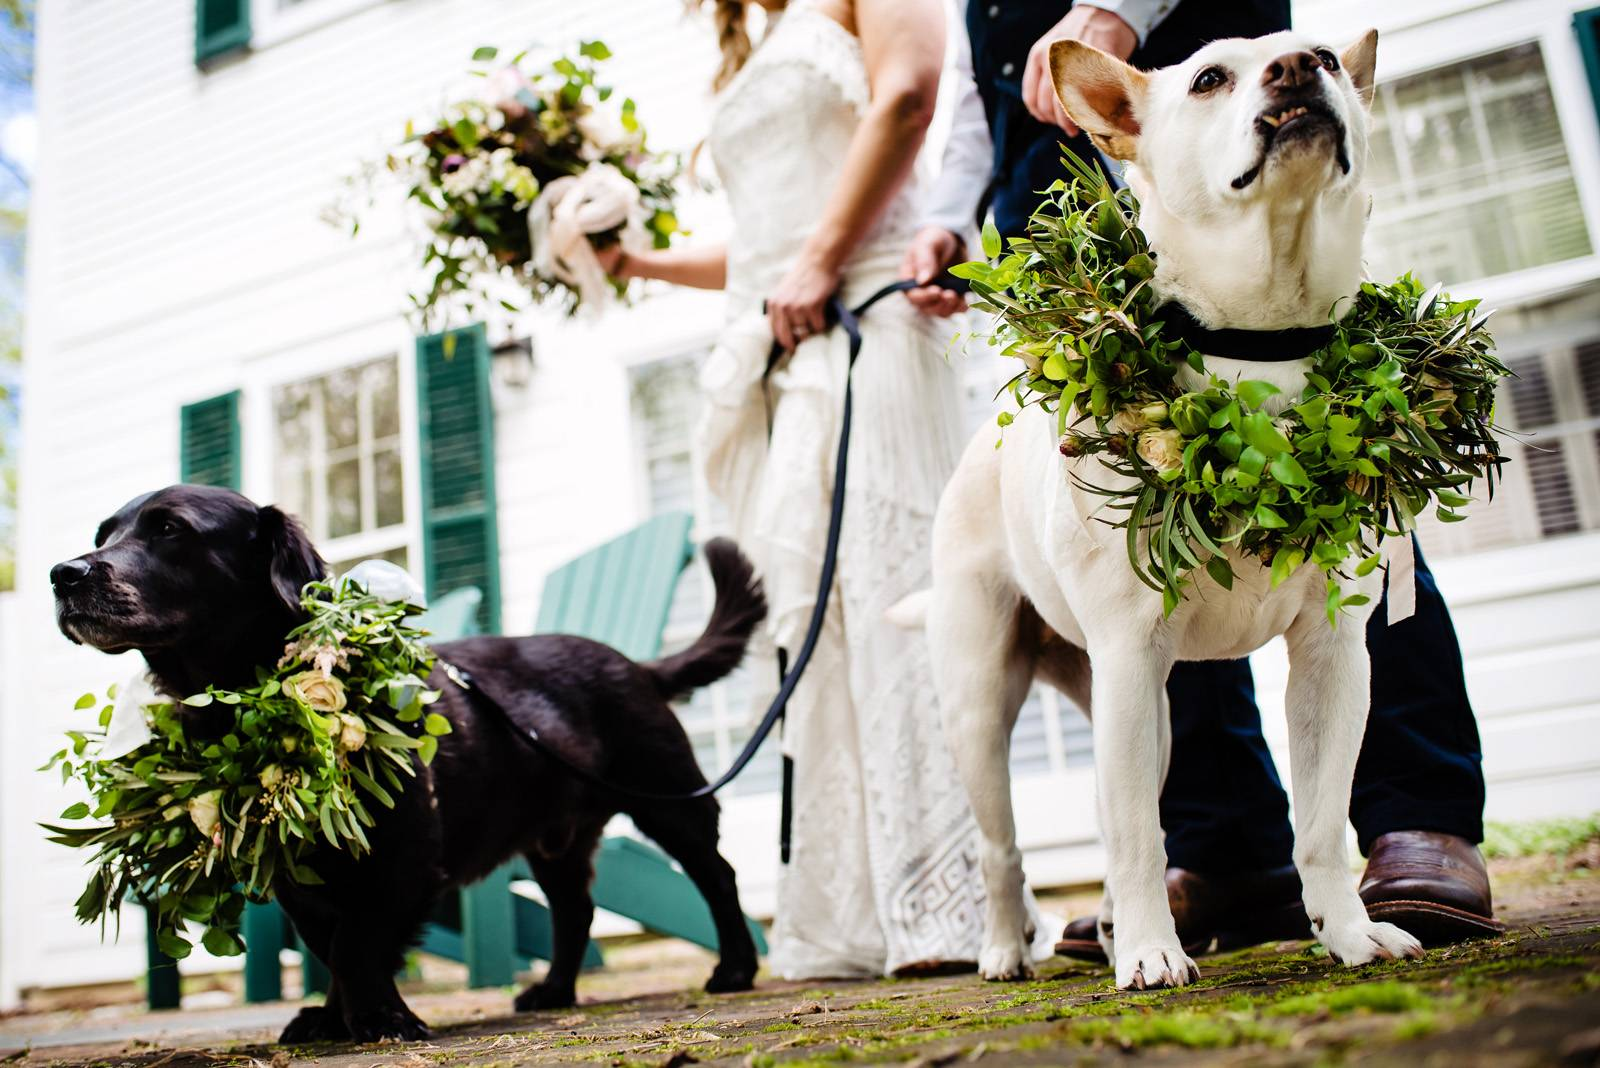 Dogs wearing floral and greenery collars pose with bride and groom on wedding day